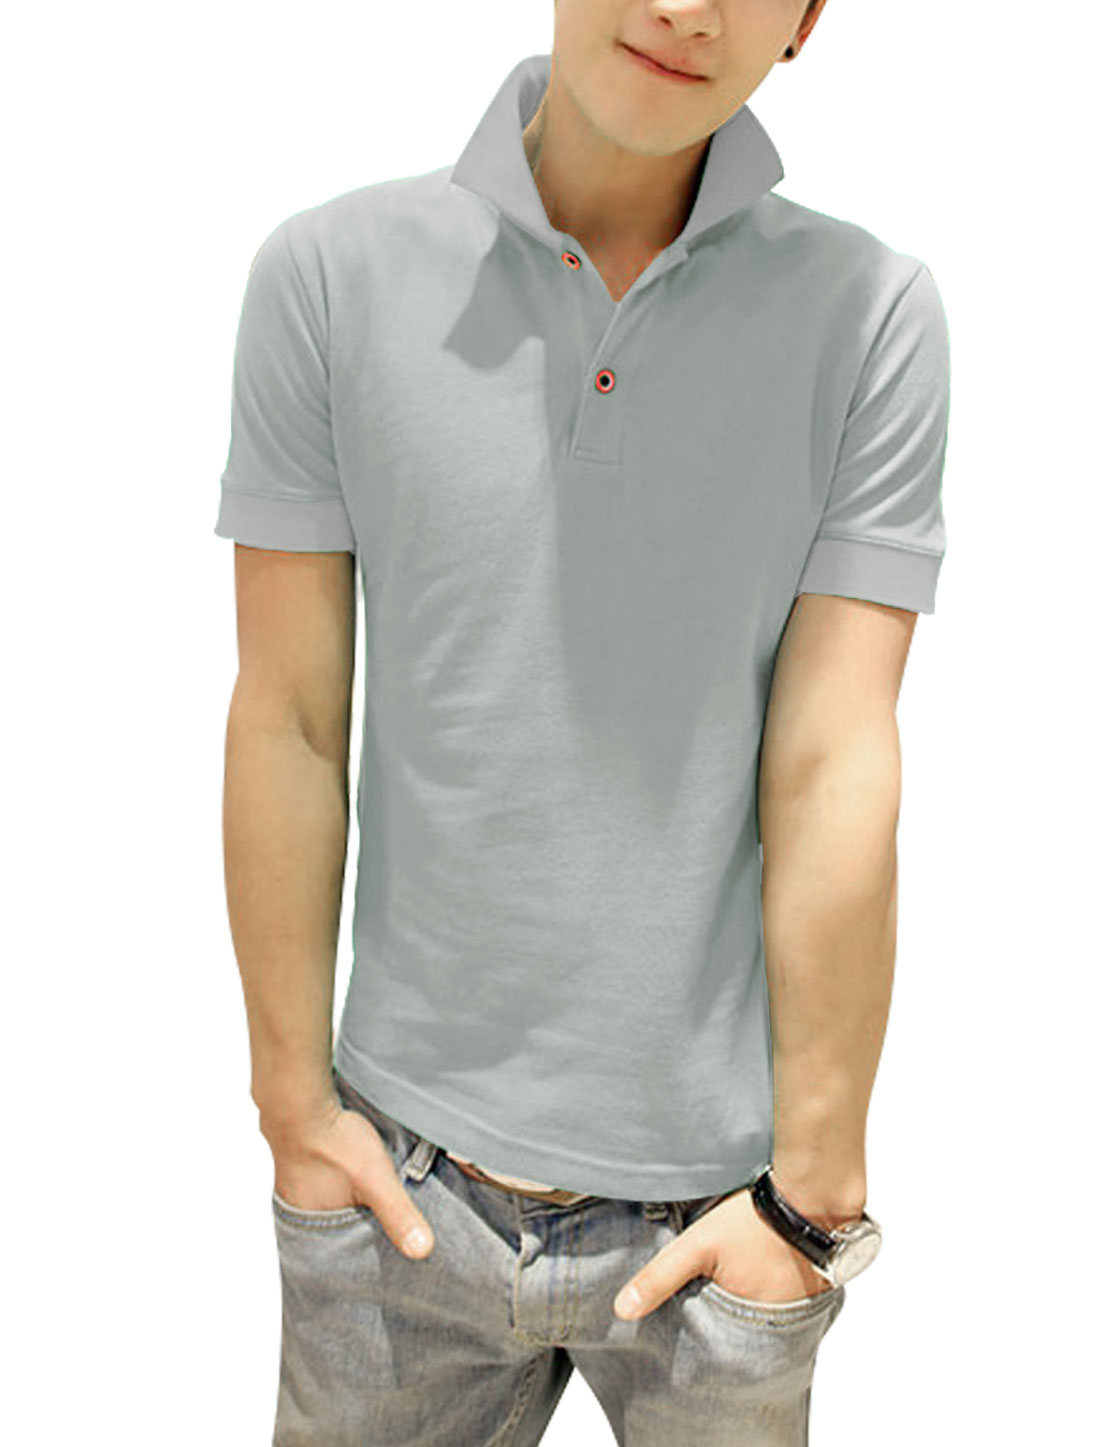 Men Short Sleeve Two Button Closure Stylish Polo Shirt Light Gray S